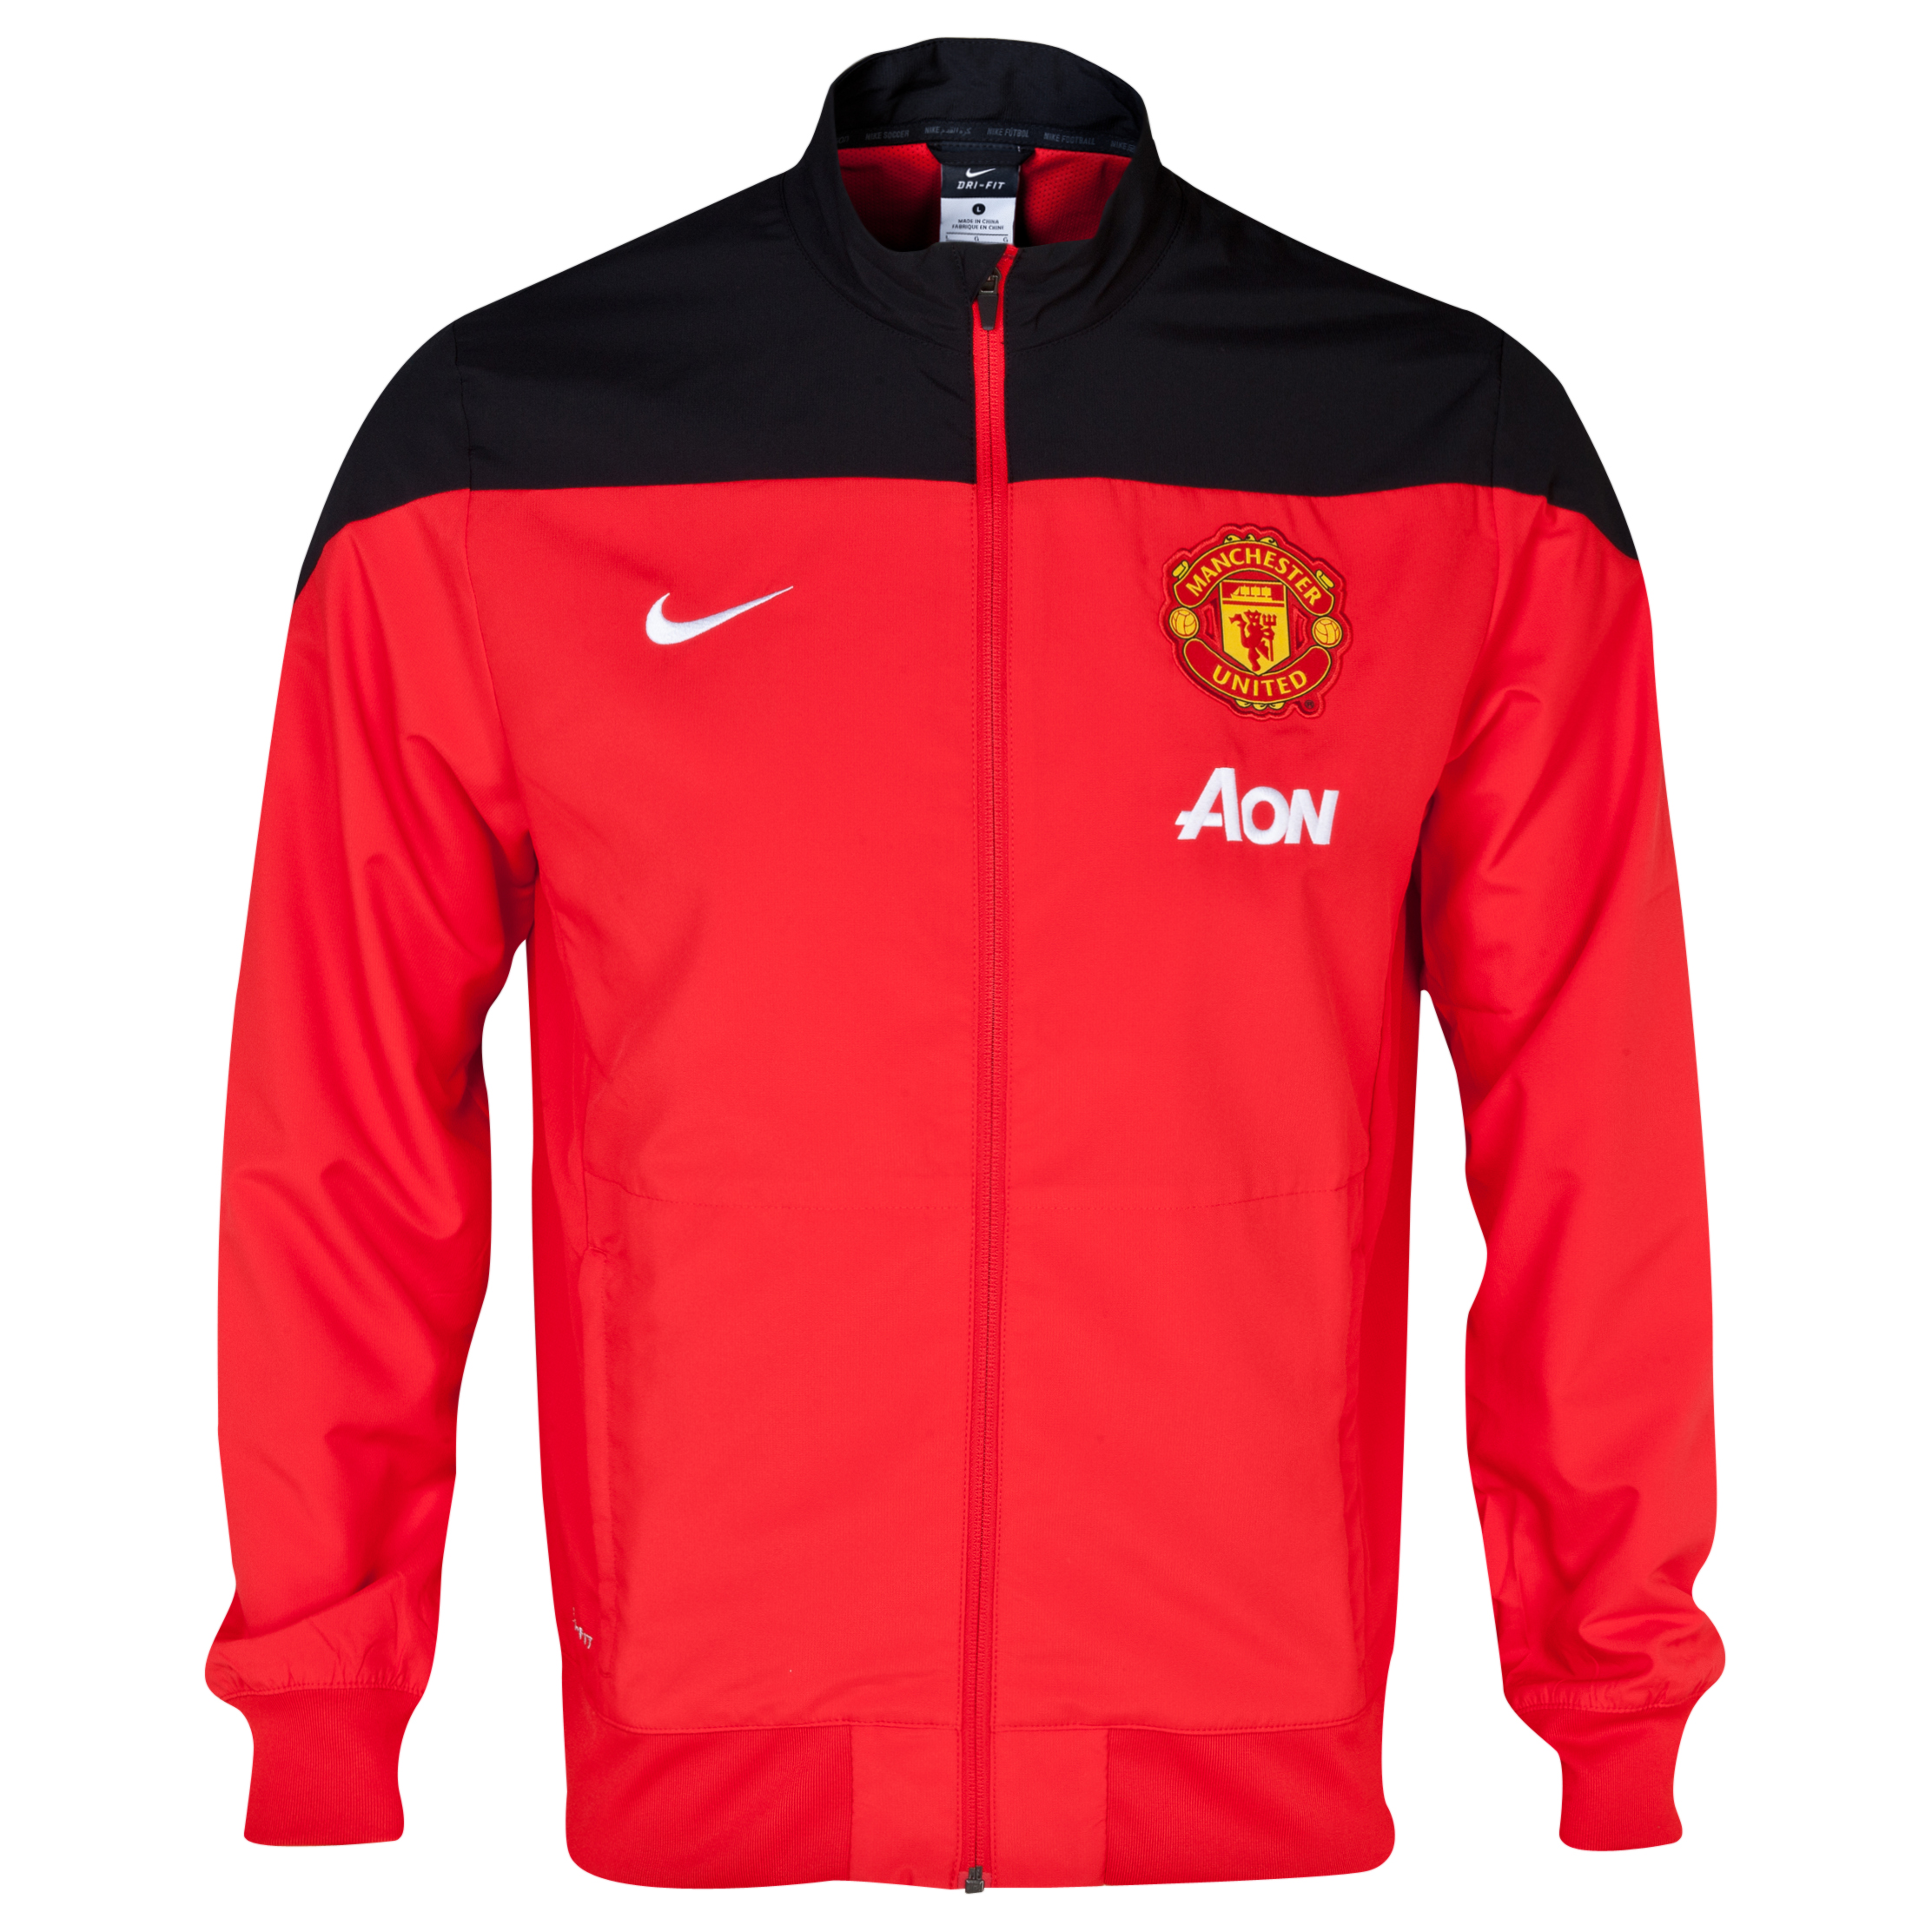 Manchester United Squad Sideline Woven Jacket - Challenge Red/Black/White